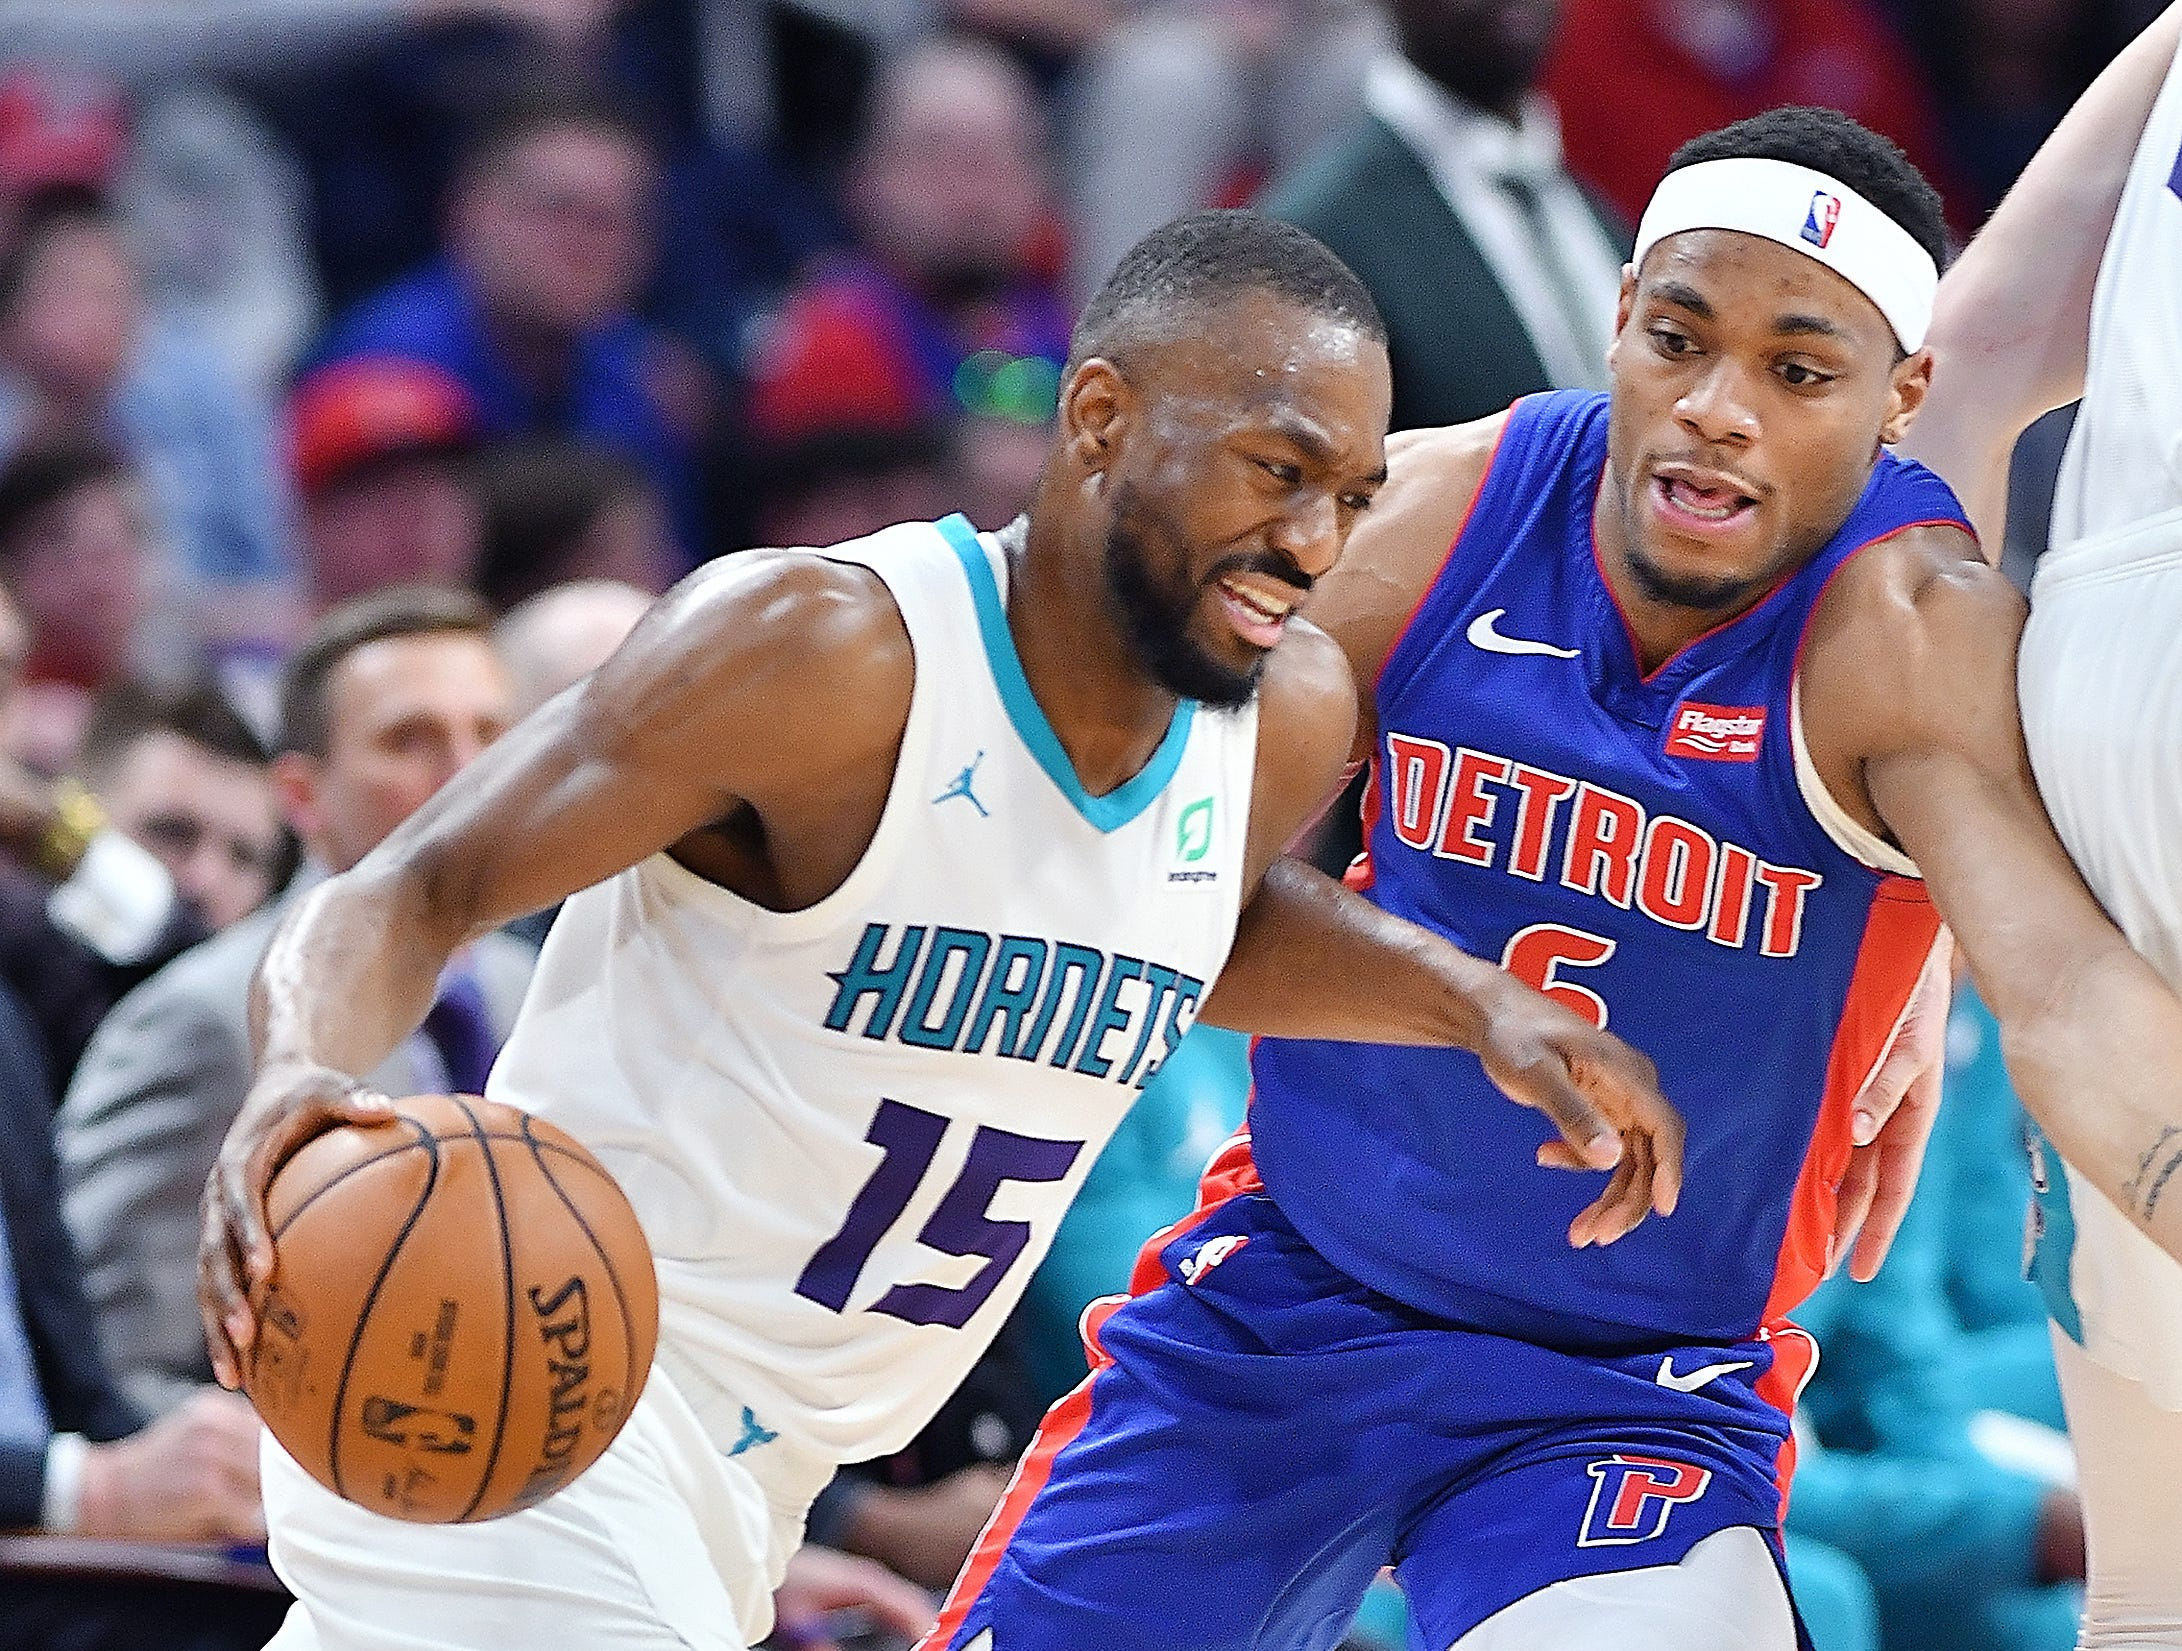 Hornets' Kemba Walker drives around Pistons' Bruce Brown in the second quarter.